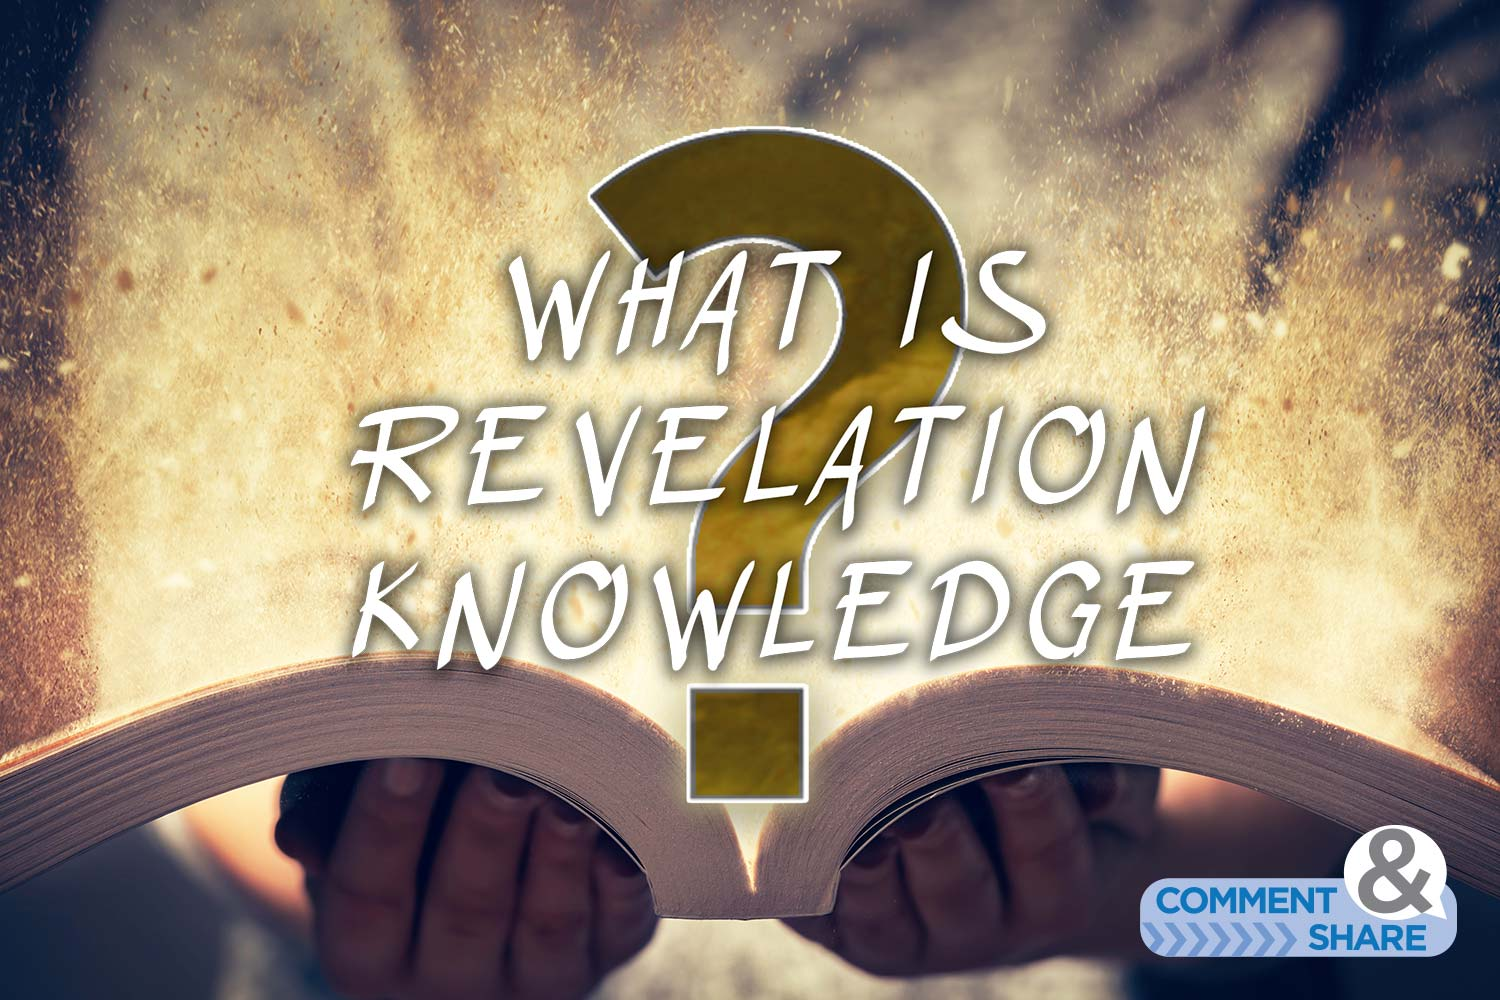 What is revelation knowledge